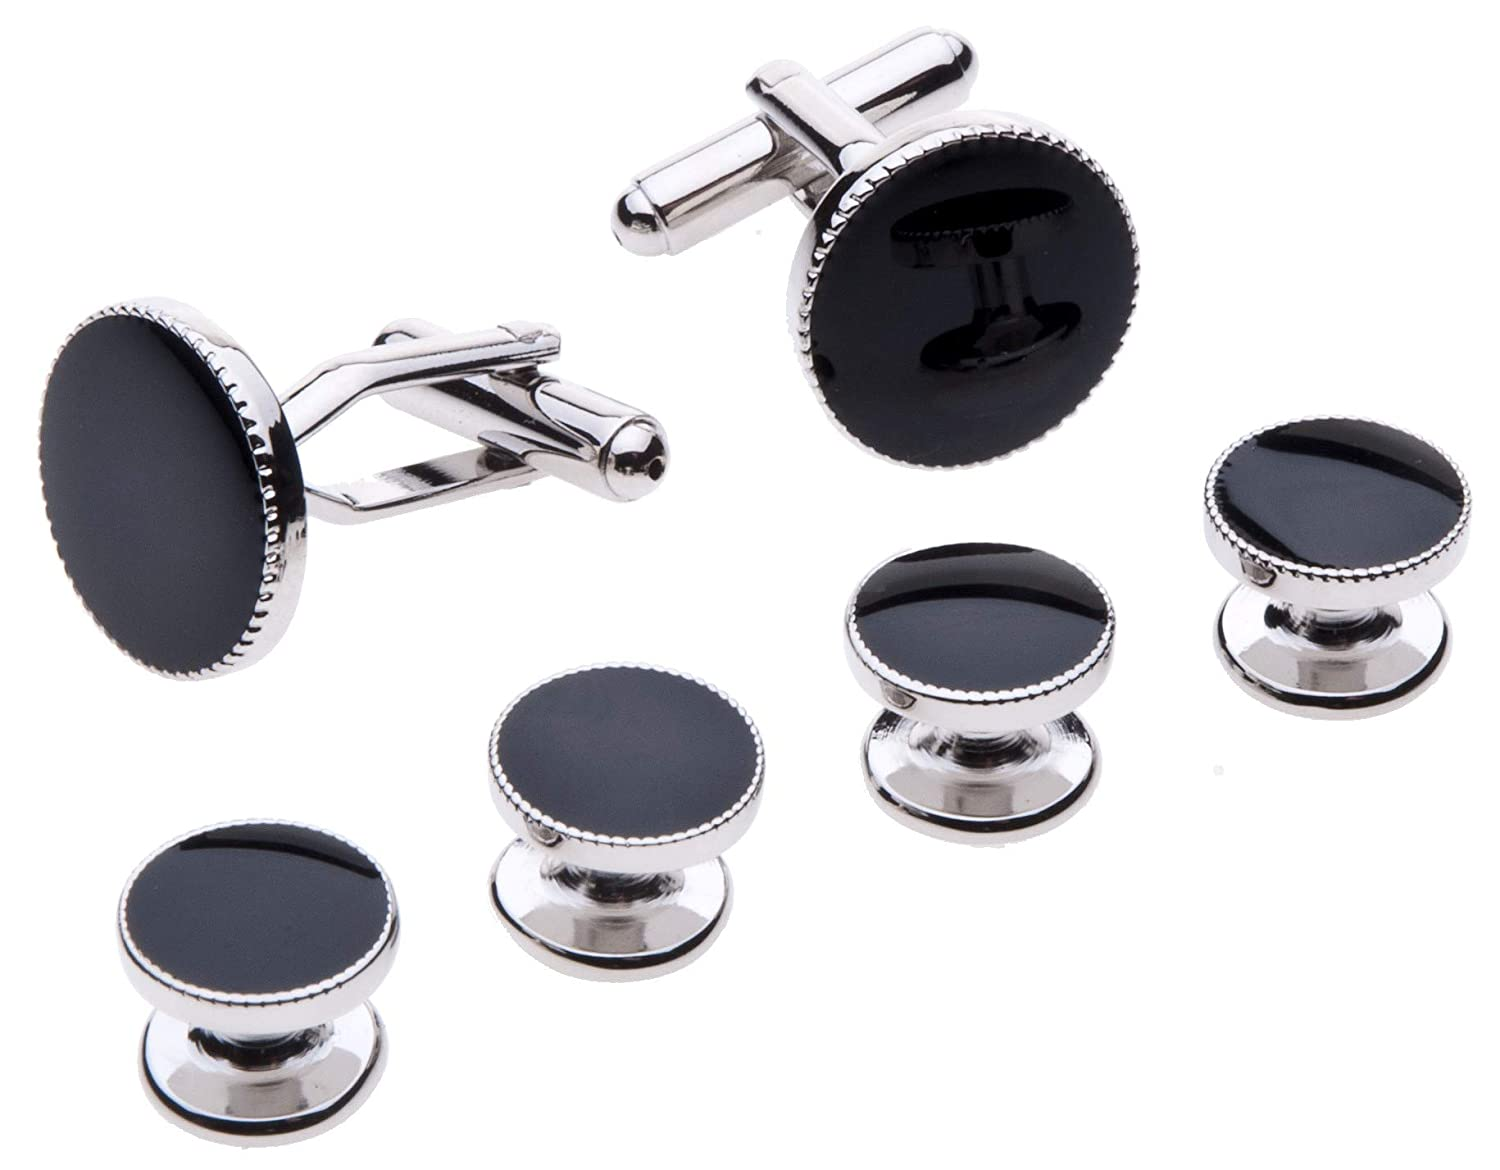 c93f6a79 Amazon.com: Cufflinks and Studs Set for Tuxedo - Formal Black with Shiny  Silver Trimming by Velette: Cuff Links: Jewelry